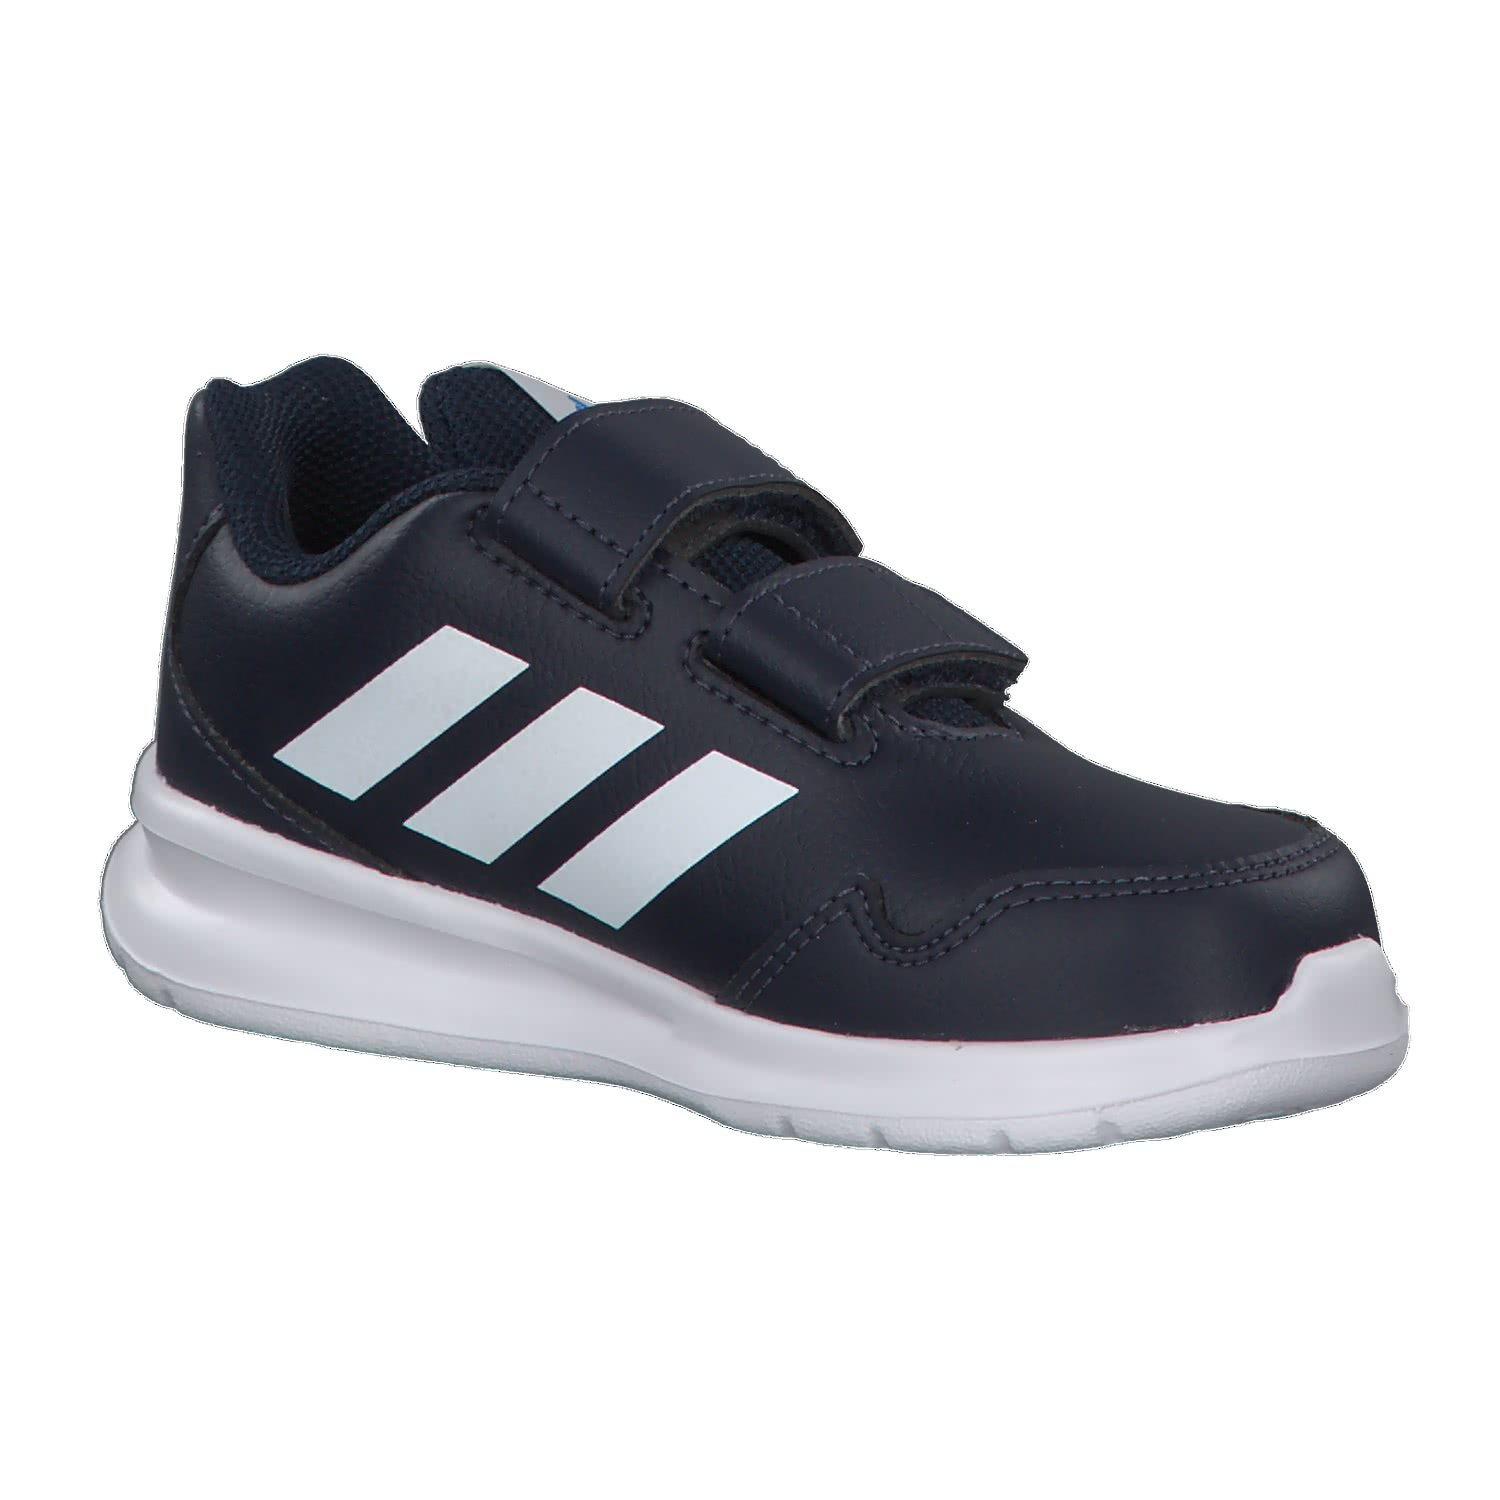 outlet store aab4a 9d558 Adidas Altarun CF, Scarpe Running Unisex – Bambini